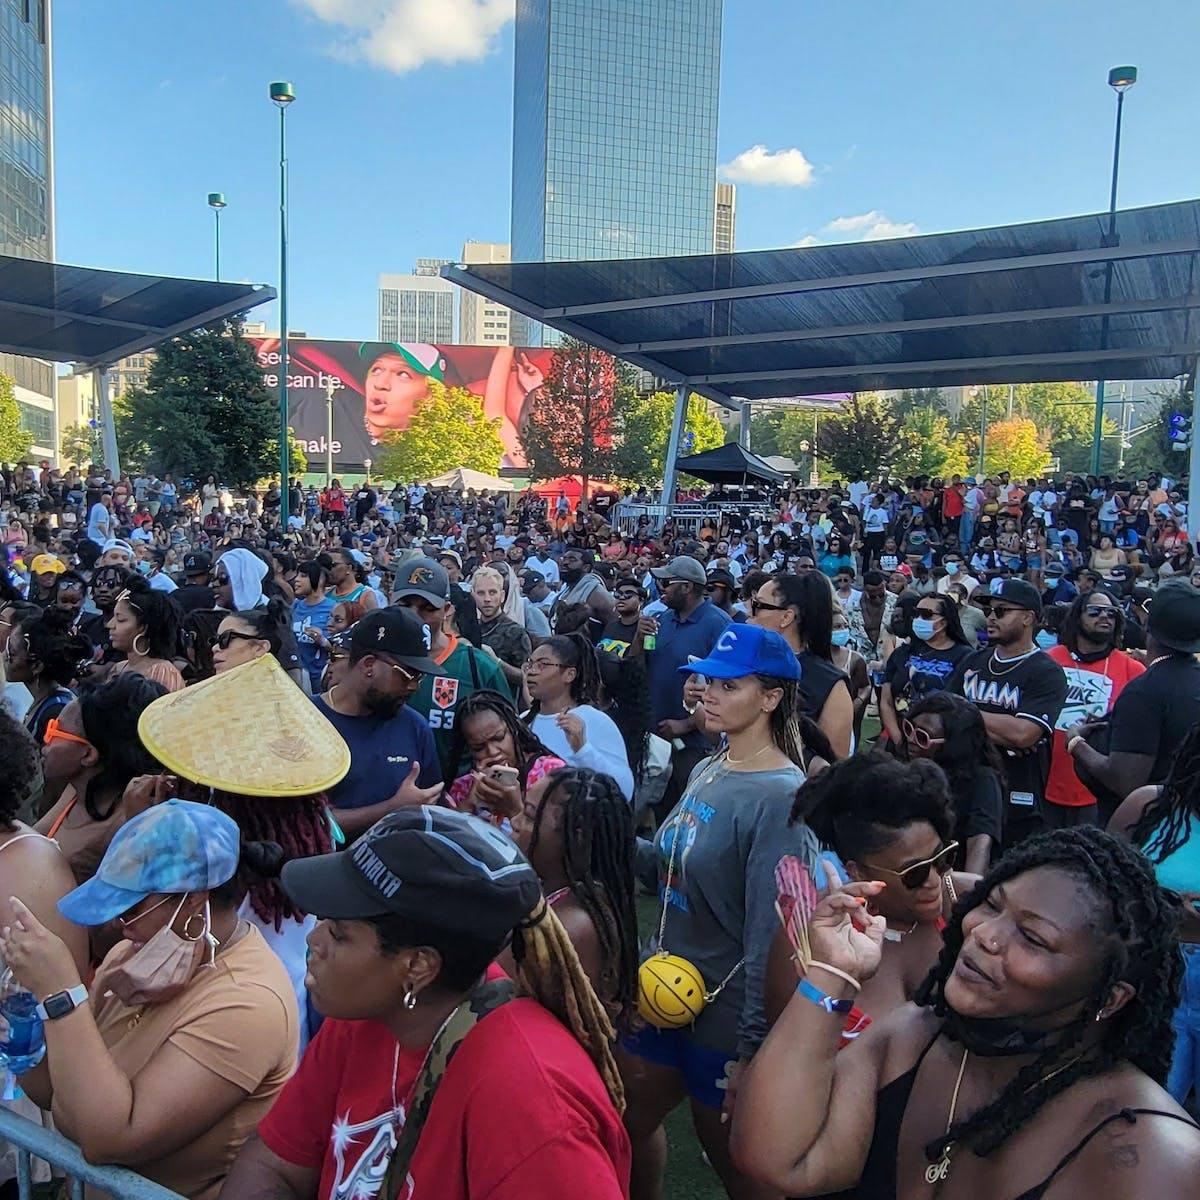 Attendees at ONE Music Fest 2021 in Atlanta, GA